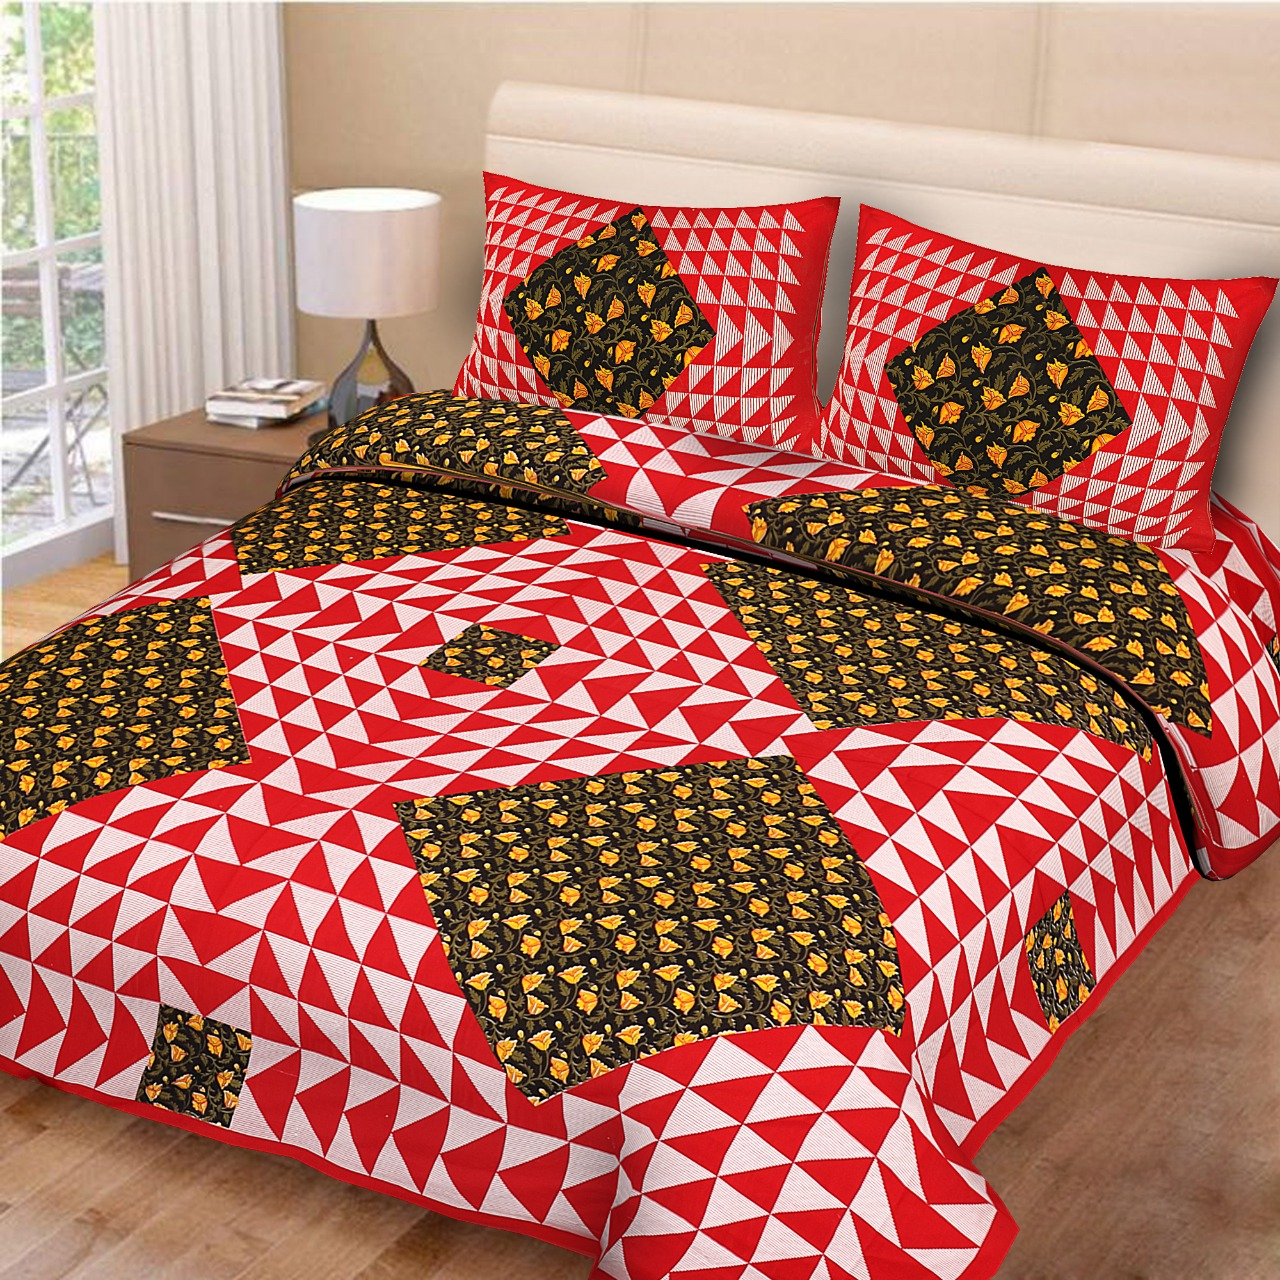 Naqsh Cotton Printed Bedsheet With 2 Pillow Covers   King Size(Red Colour)